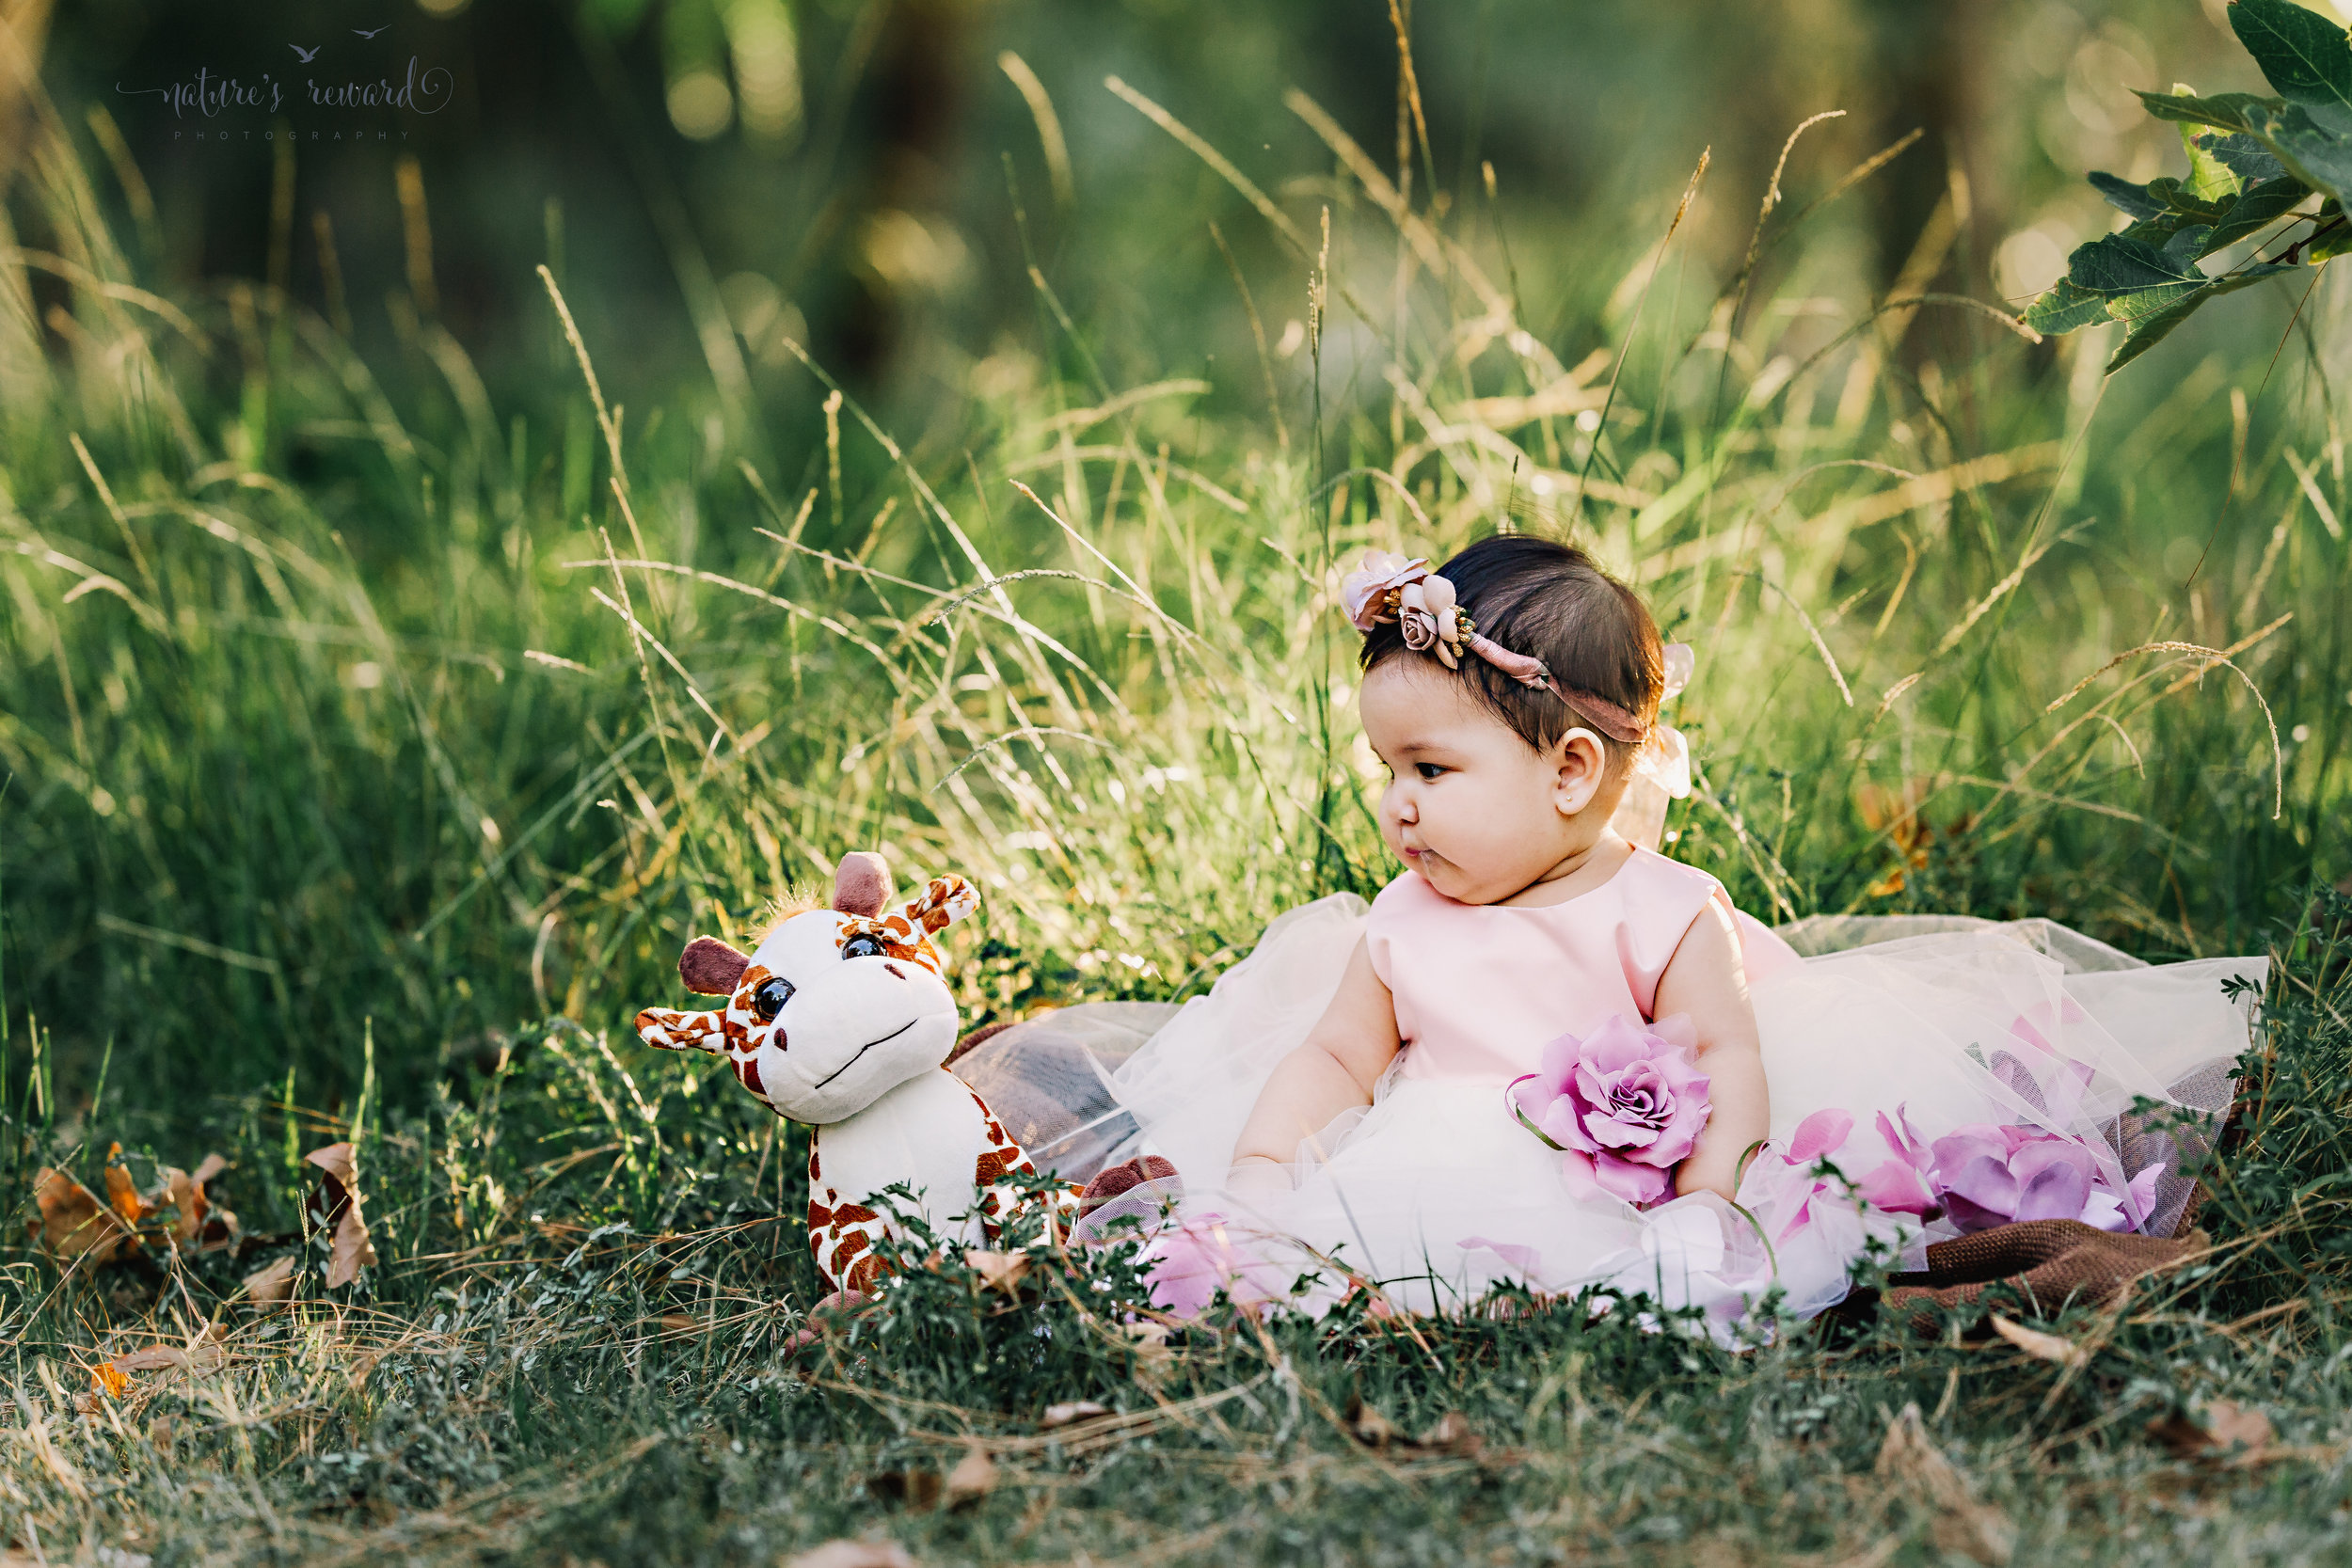 Gorgeous baby Girl in a lovely soft pink and lace gown full of flower petals surrounded by lush greenery, sitting with her friend the giraffe, in this sitter portrait by Nature's Reward Photography